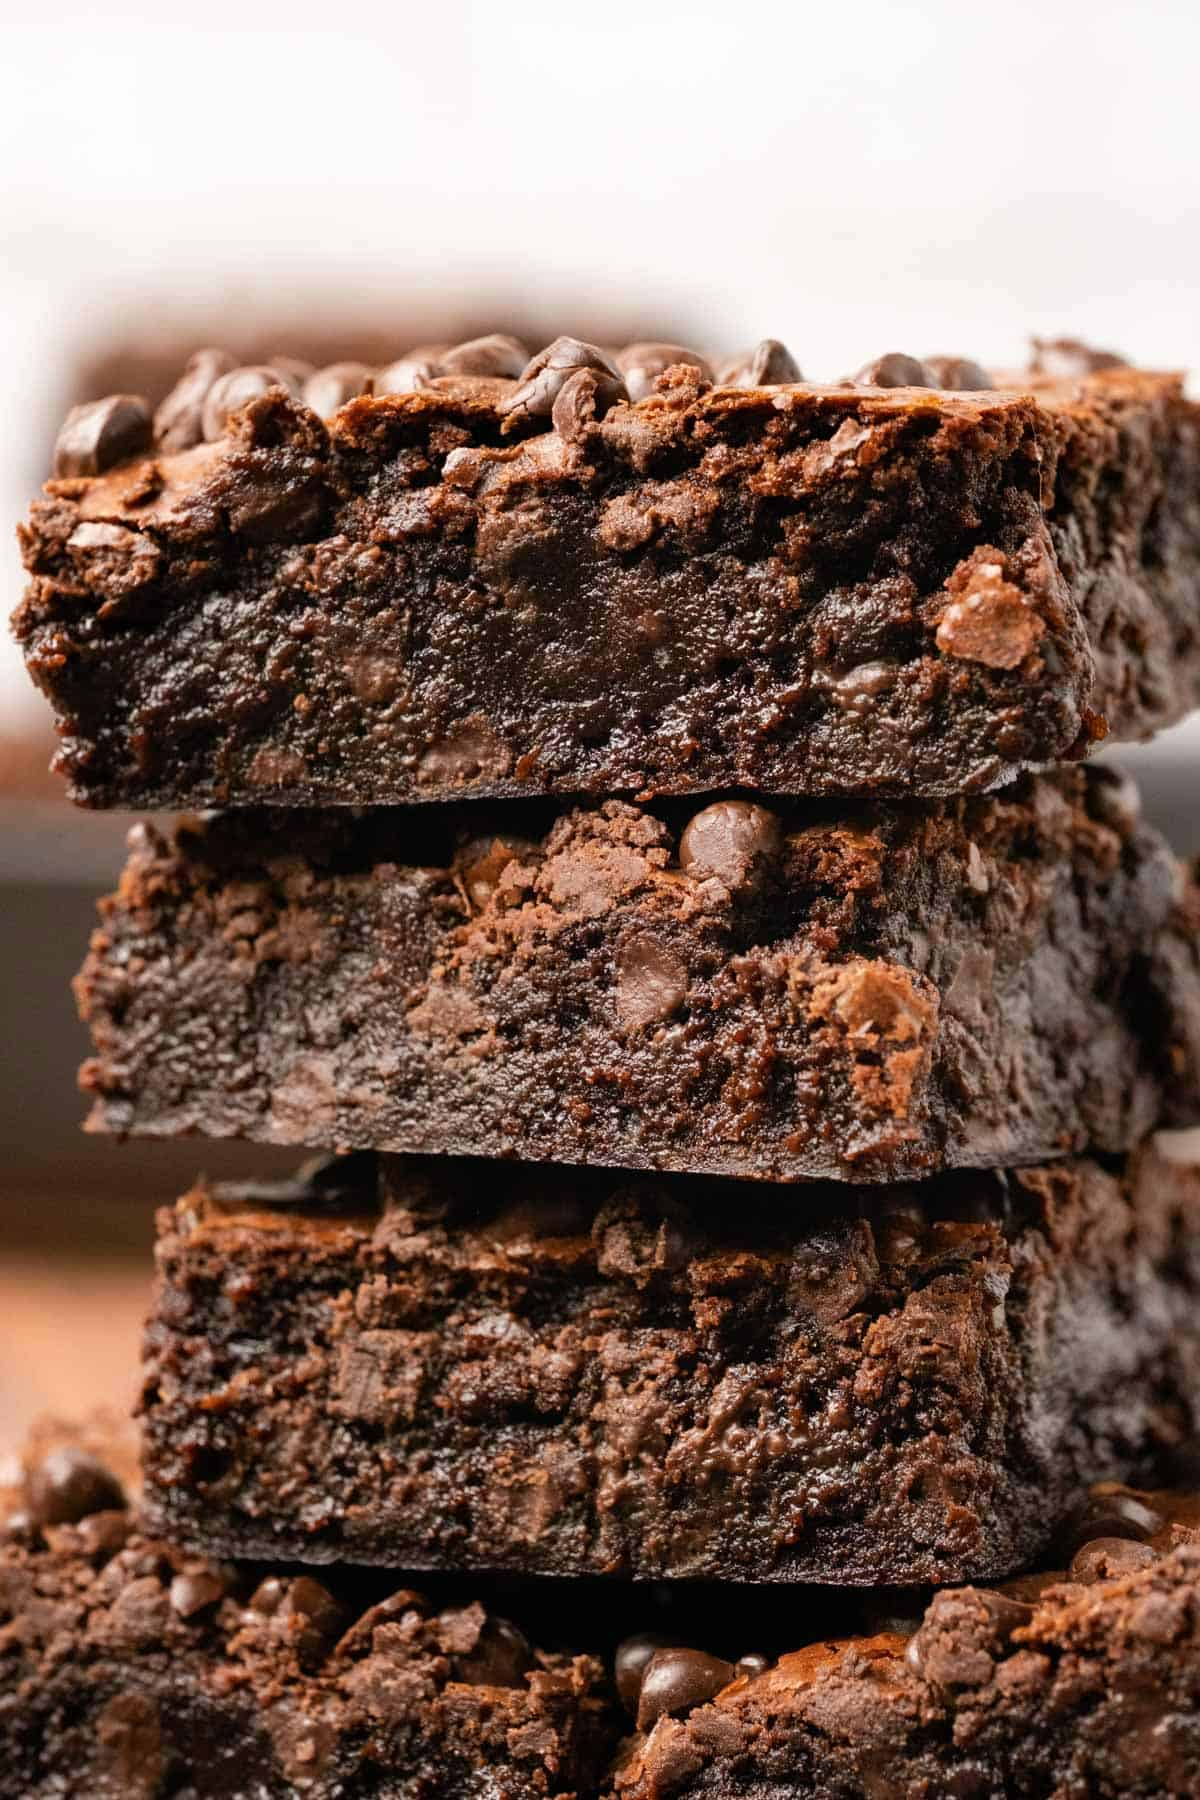 Brownies stacked up on top of each other.